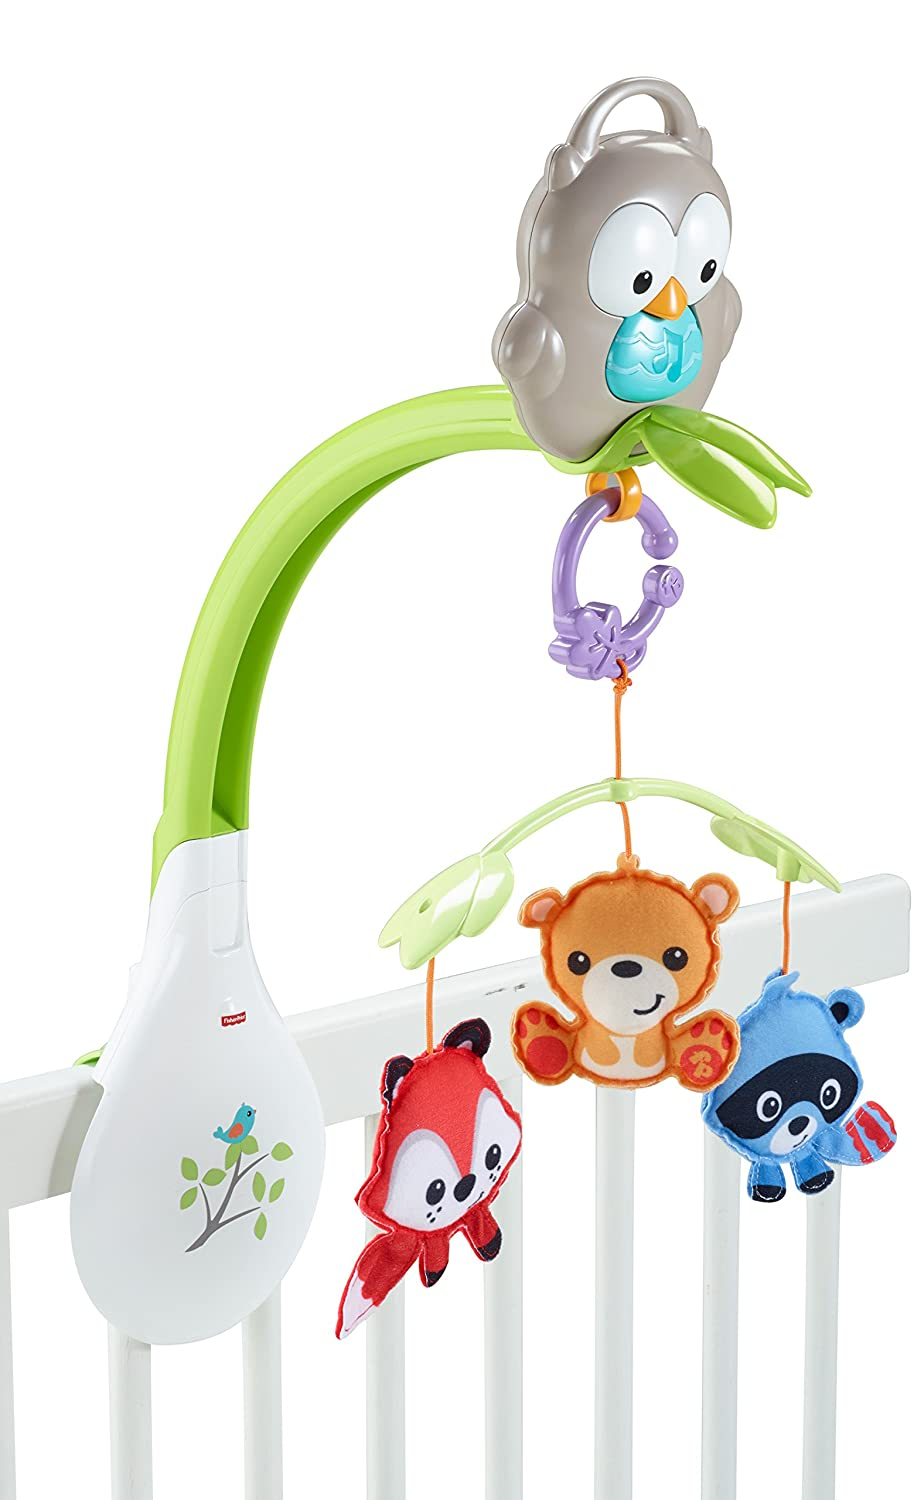 fisher price woodland friends musical 3 in 1 mobile crib lullaby music for baby ebay. Black Bedroom Furniture Sets. Home Design Ideas